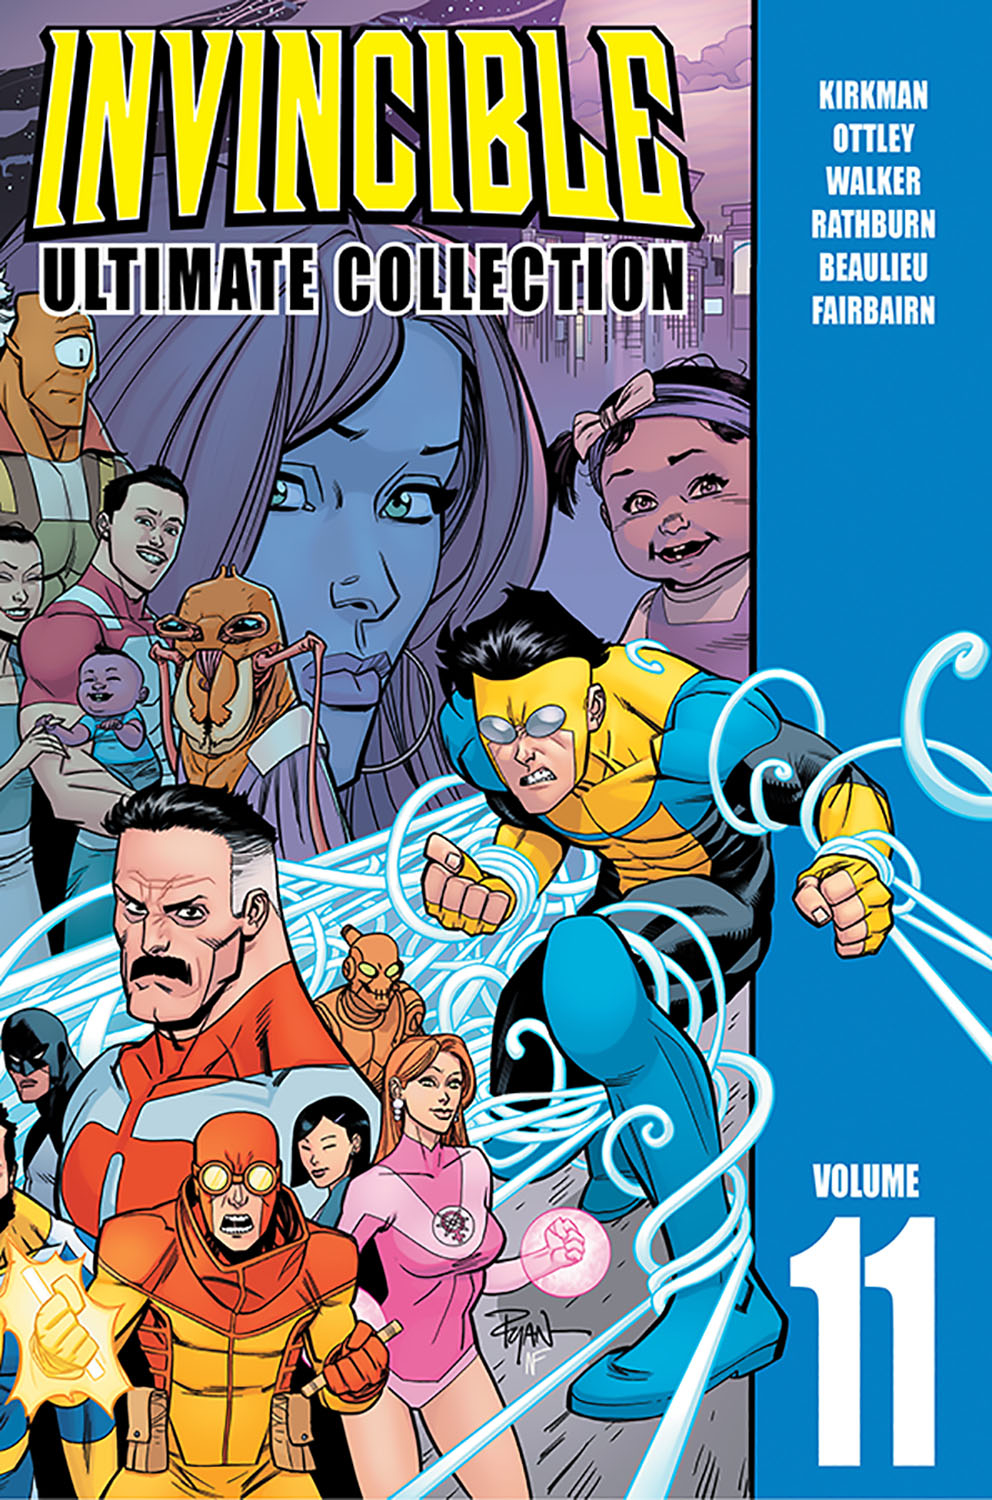 INVINCIBLE HC VOL 11 ULTIMATE COLL (MAR170859) (MR)